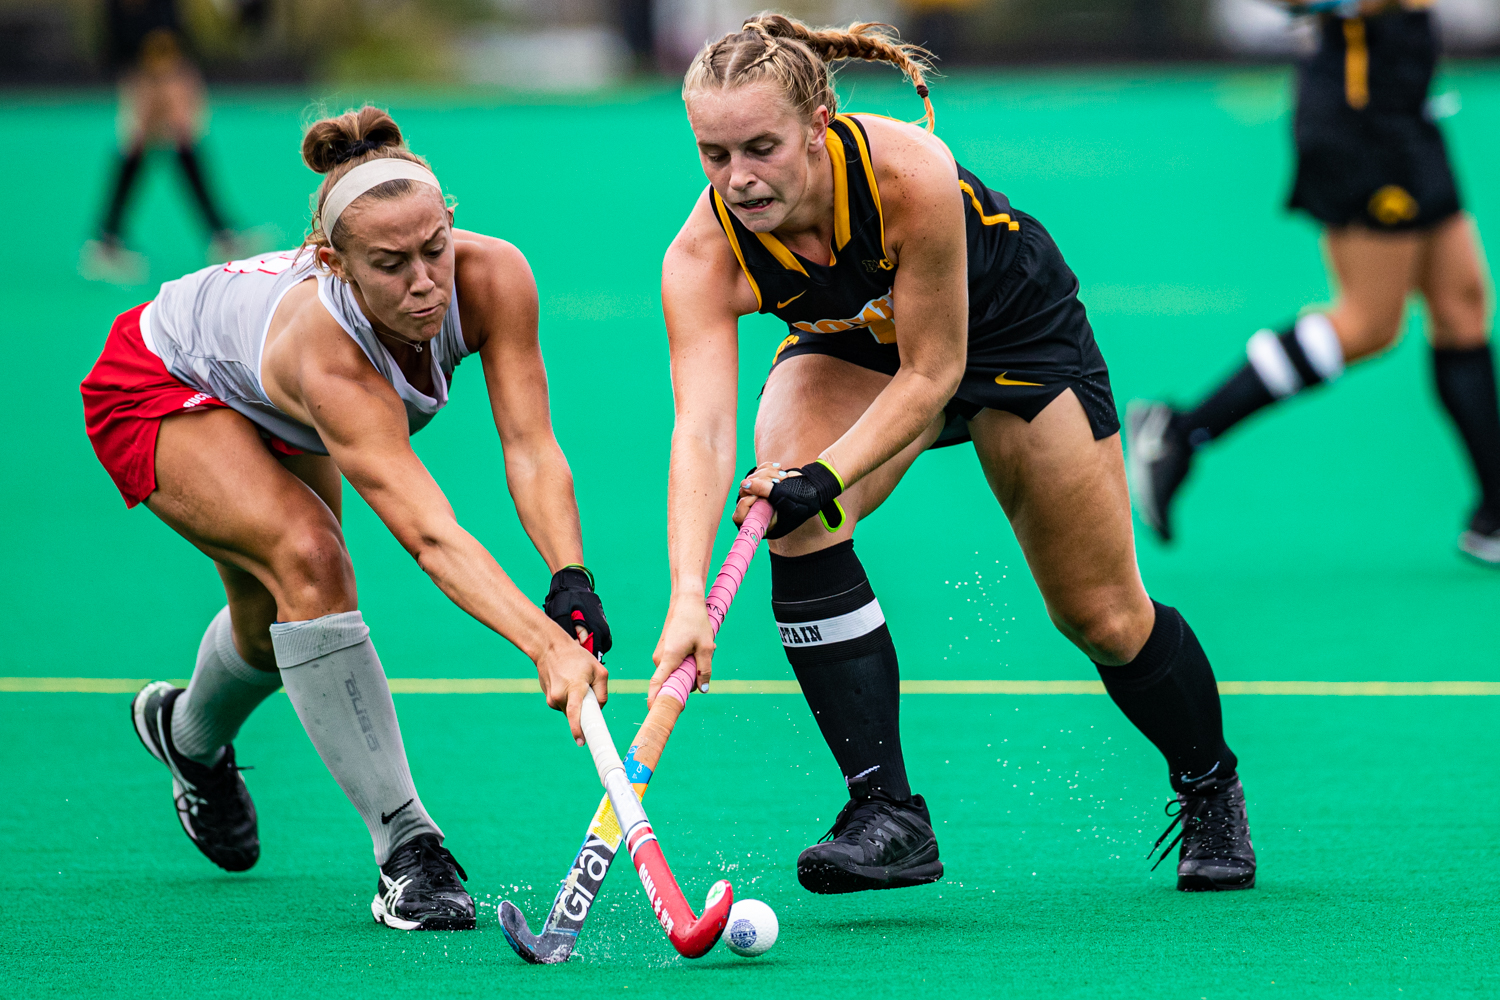 Iowa midfielder Katie Birch handles the ball during a field hockey match between Iowa and Ohio State on Friday, September 27, 2019. The Hawkeyes defeated the Buckeyes, 2-1.